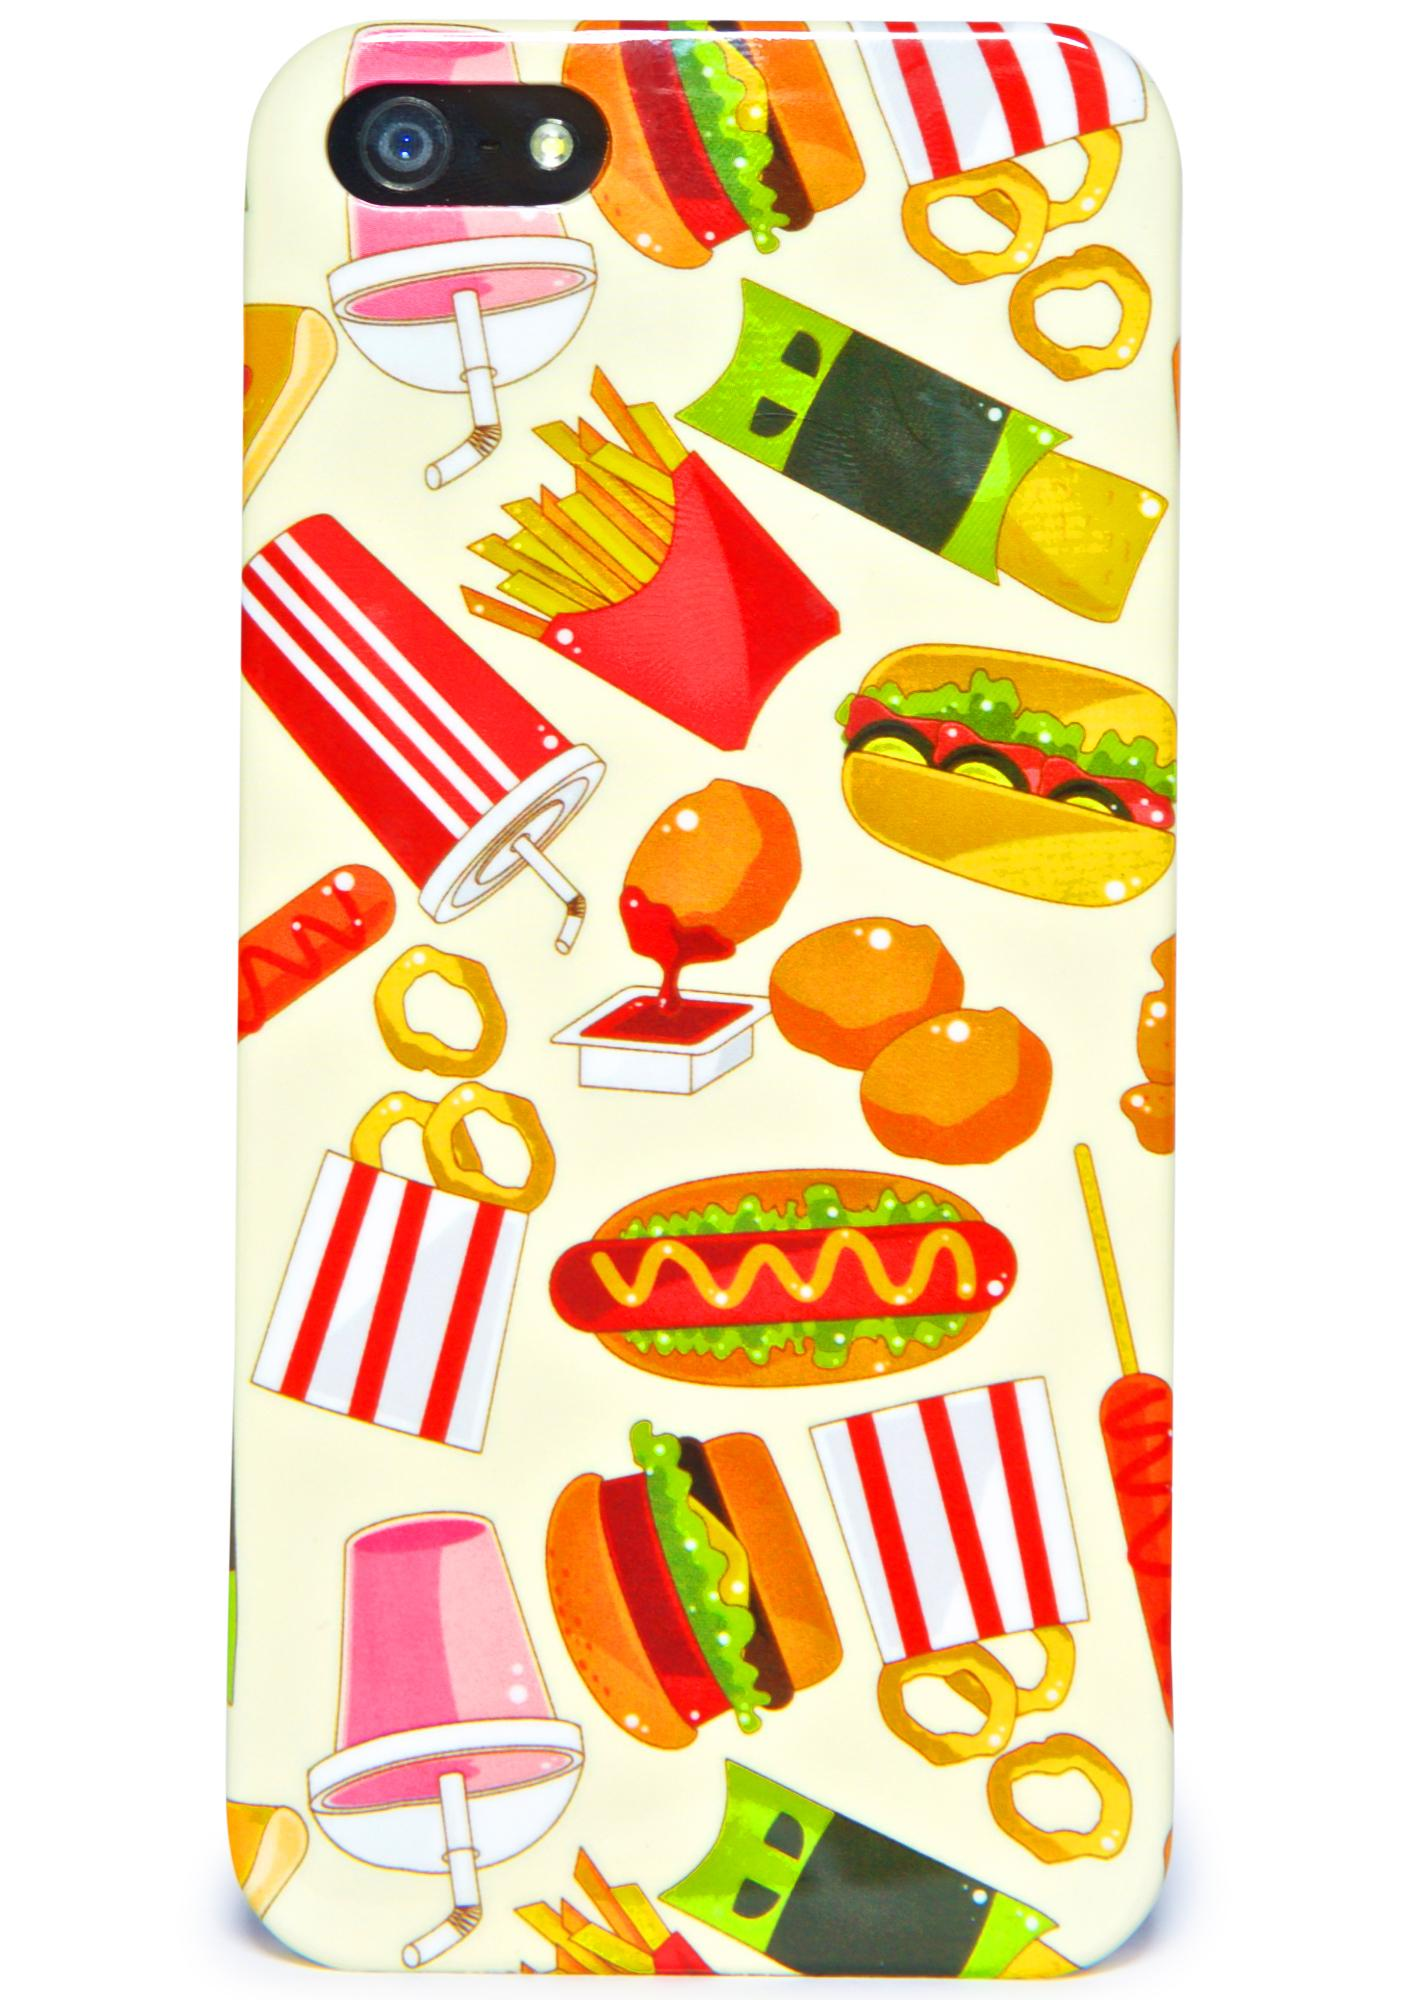 Local Heroes Fast Food iPhone 5 Case